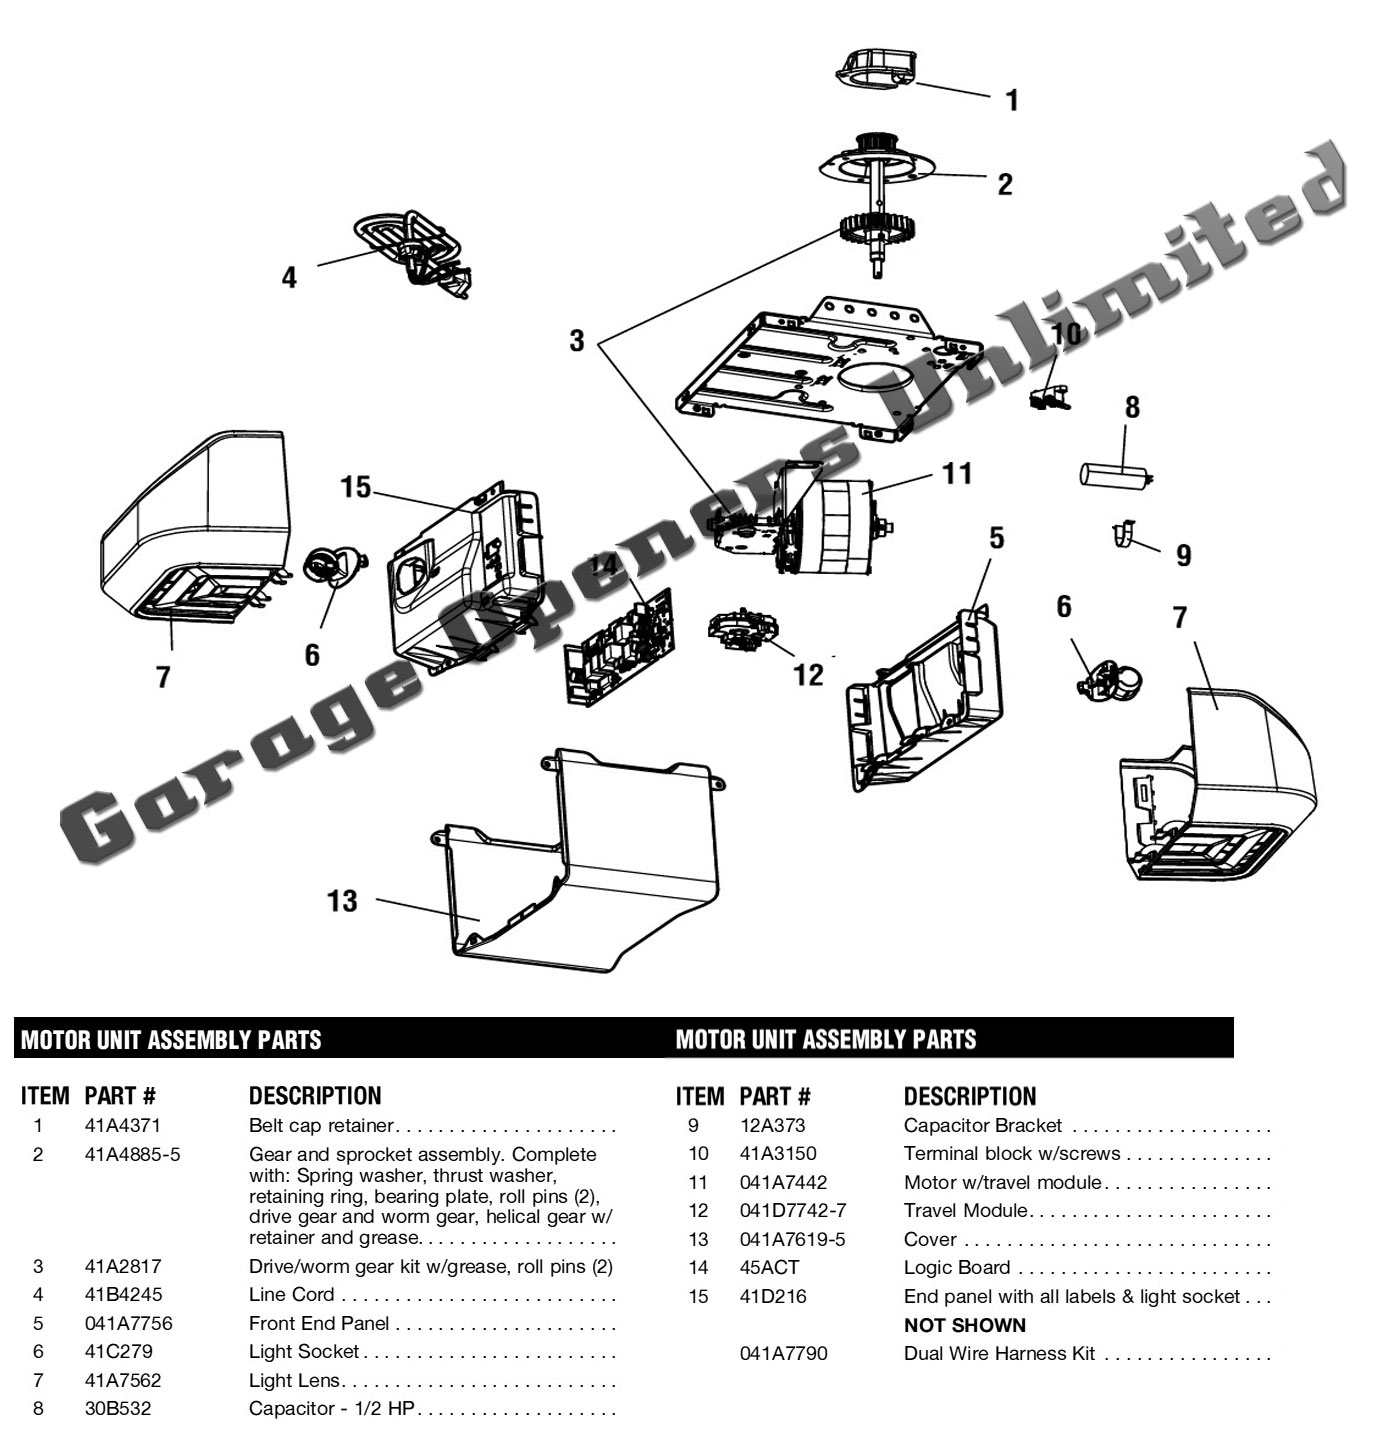 Liftmaster 8355 Garage Door Opener Replacement Parts Diagram Large old garage door opener parts btca info examples doors designs liftmaster garage door opener wiring diagram at gsmx.co